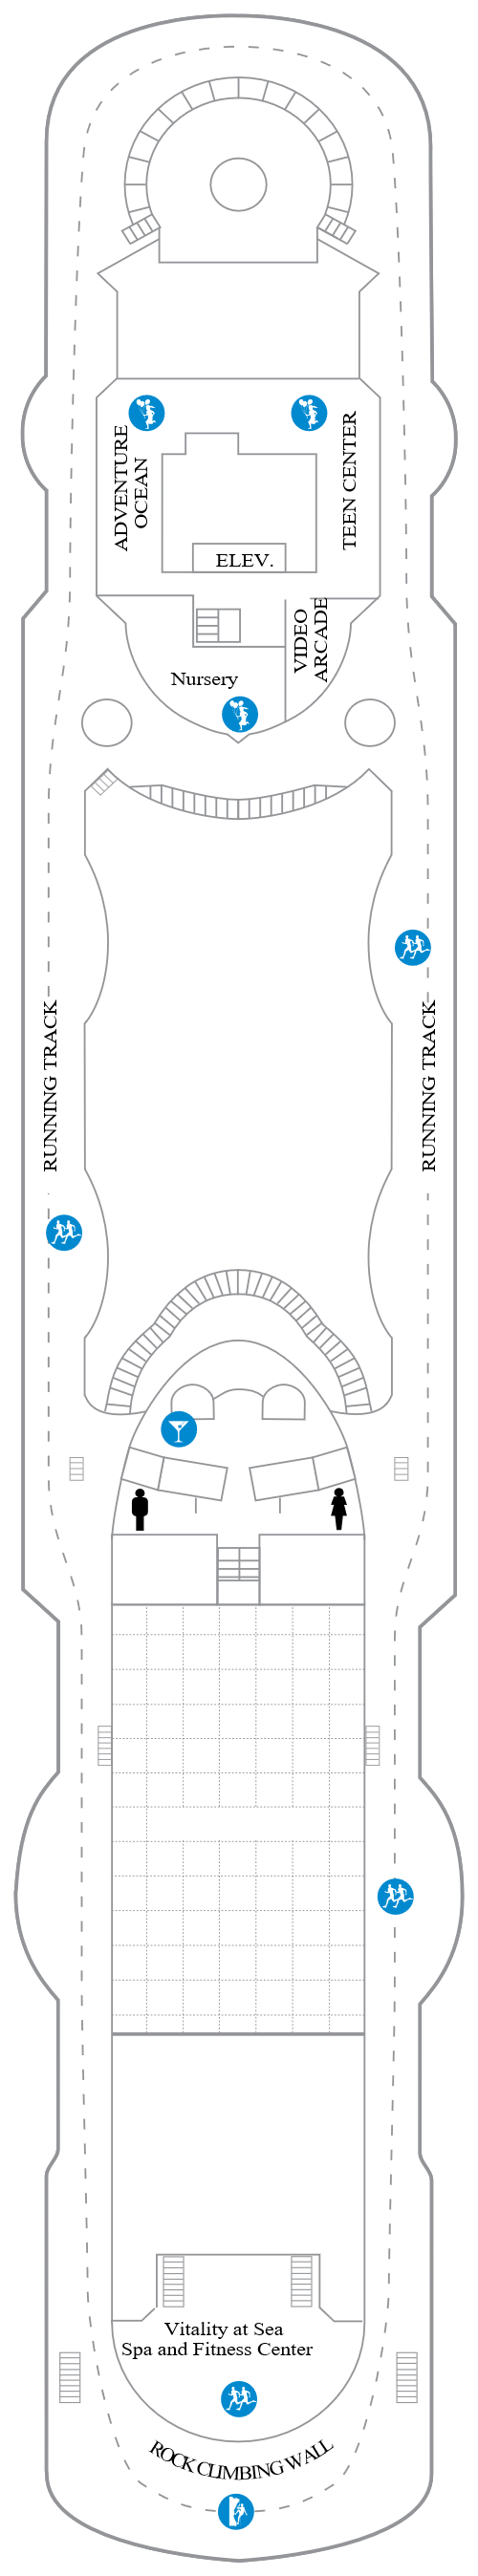 Vision Of The Seas Deck 10 layout